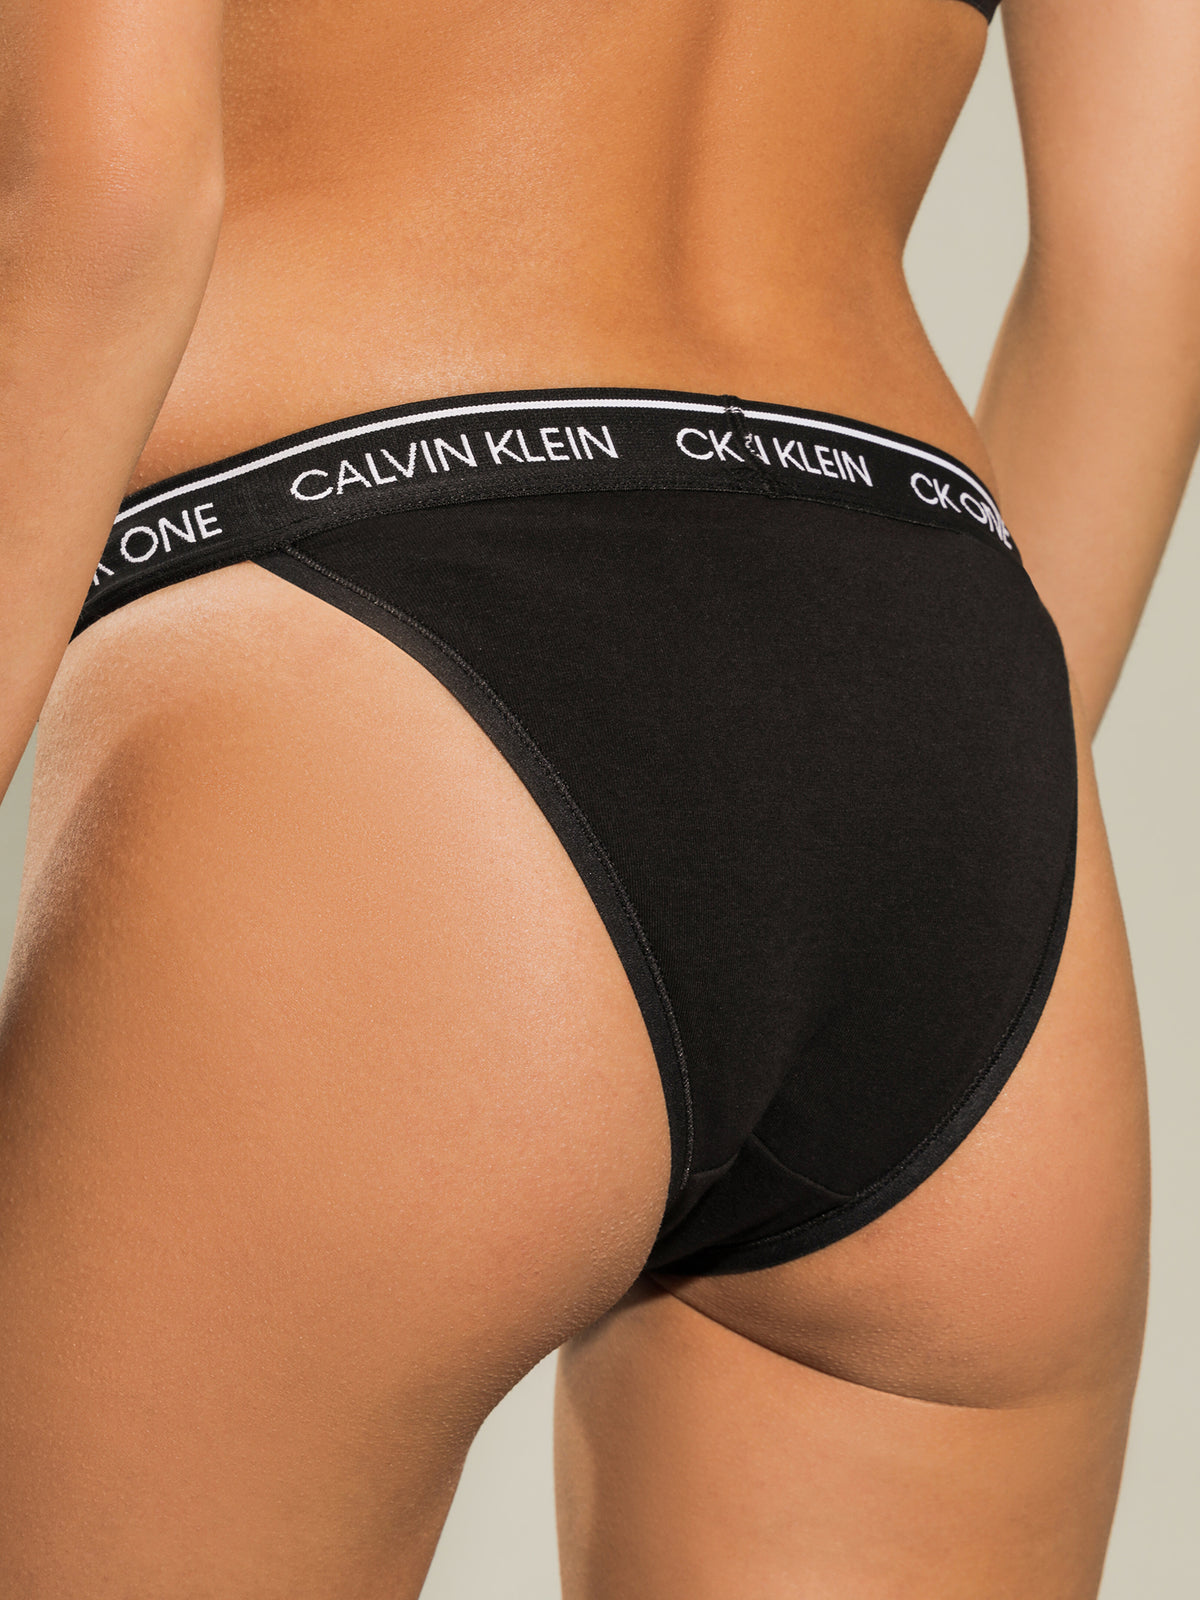 One Cotton Brazilian Briefs in Black